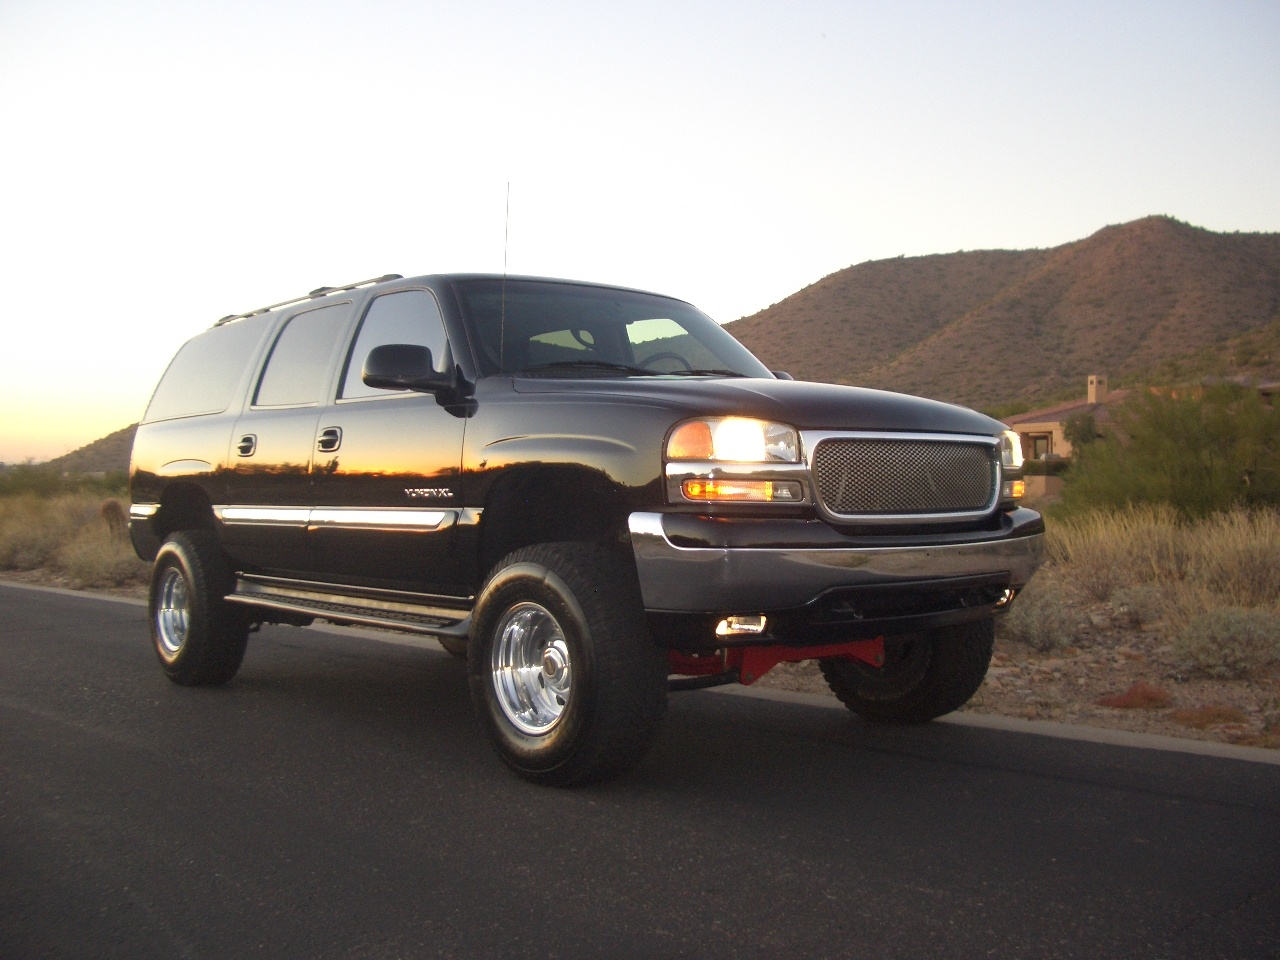 Picture of 2000 gmc yukon xl 1500 slt 4wd exterior gallery_worthy